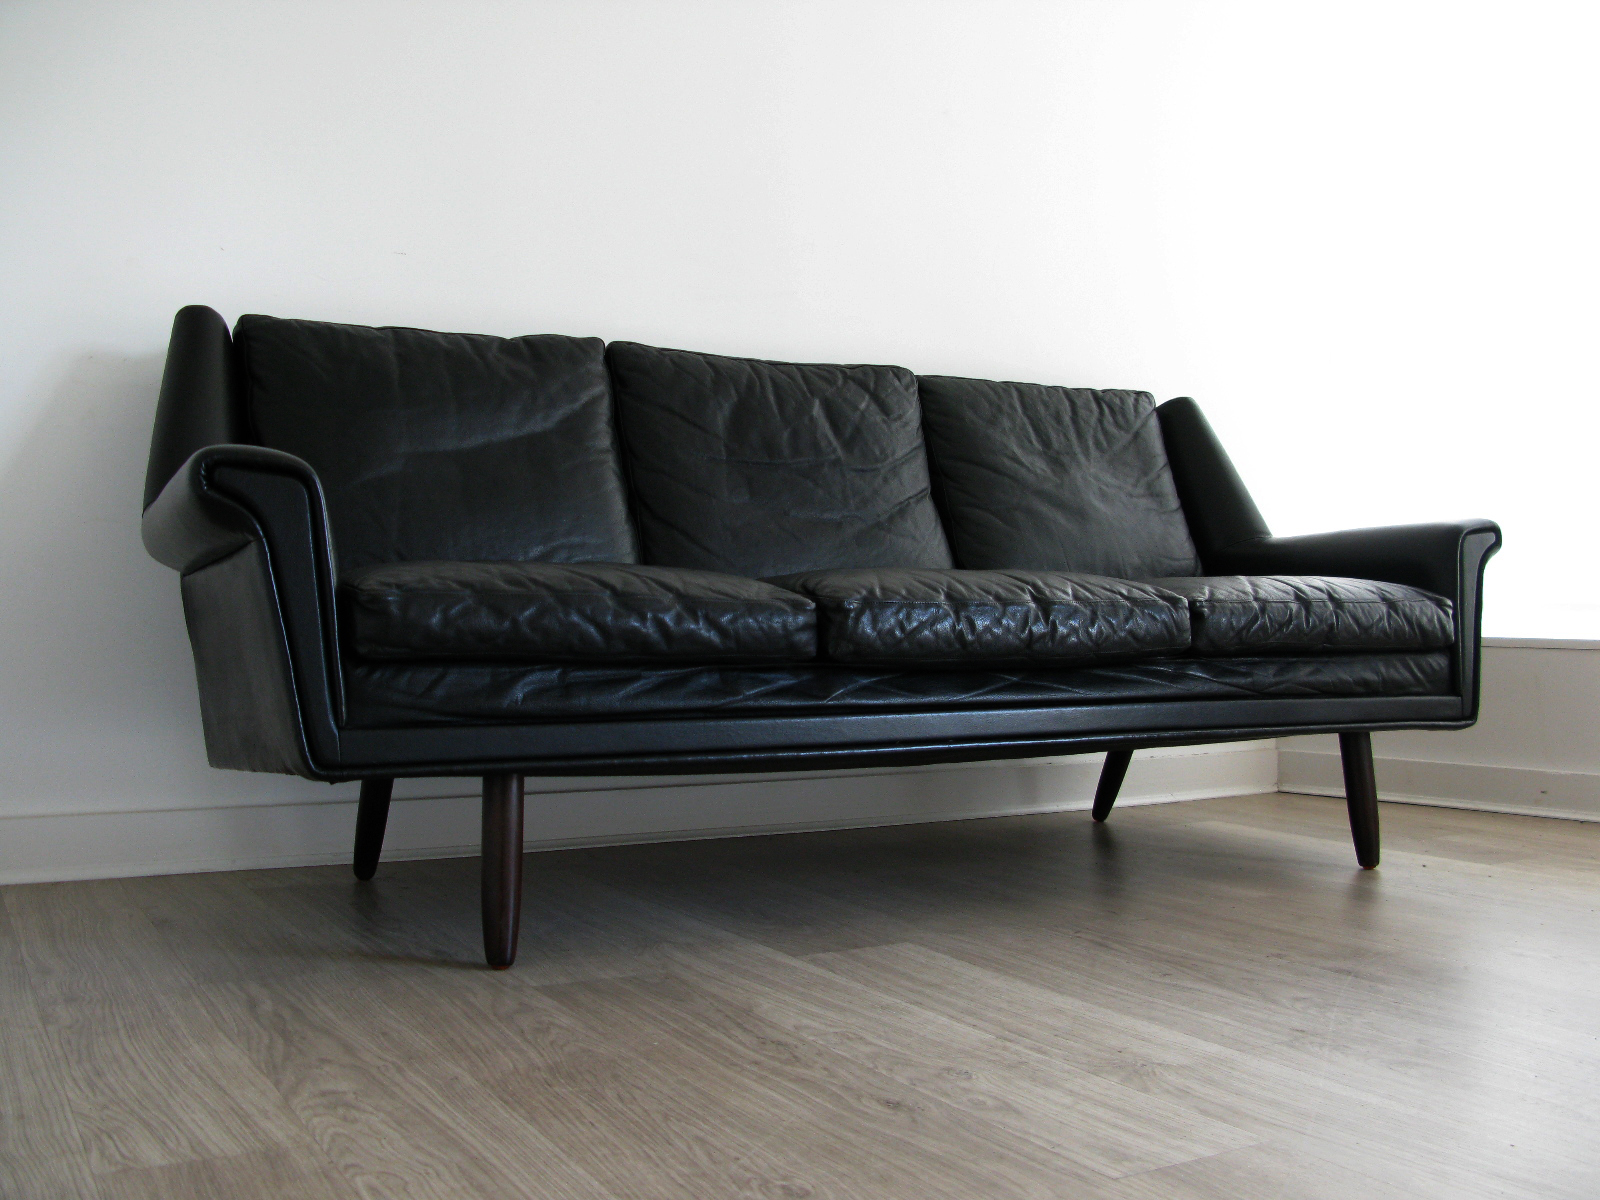 Vintage retro furniture danish heals eames 60s 70s sofas for Funky furniture